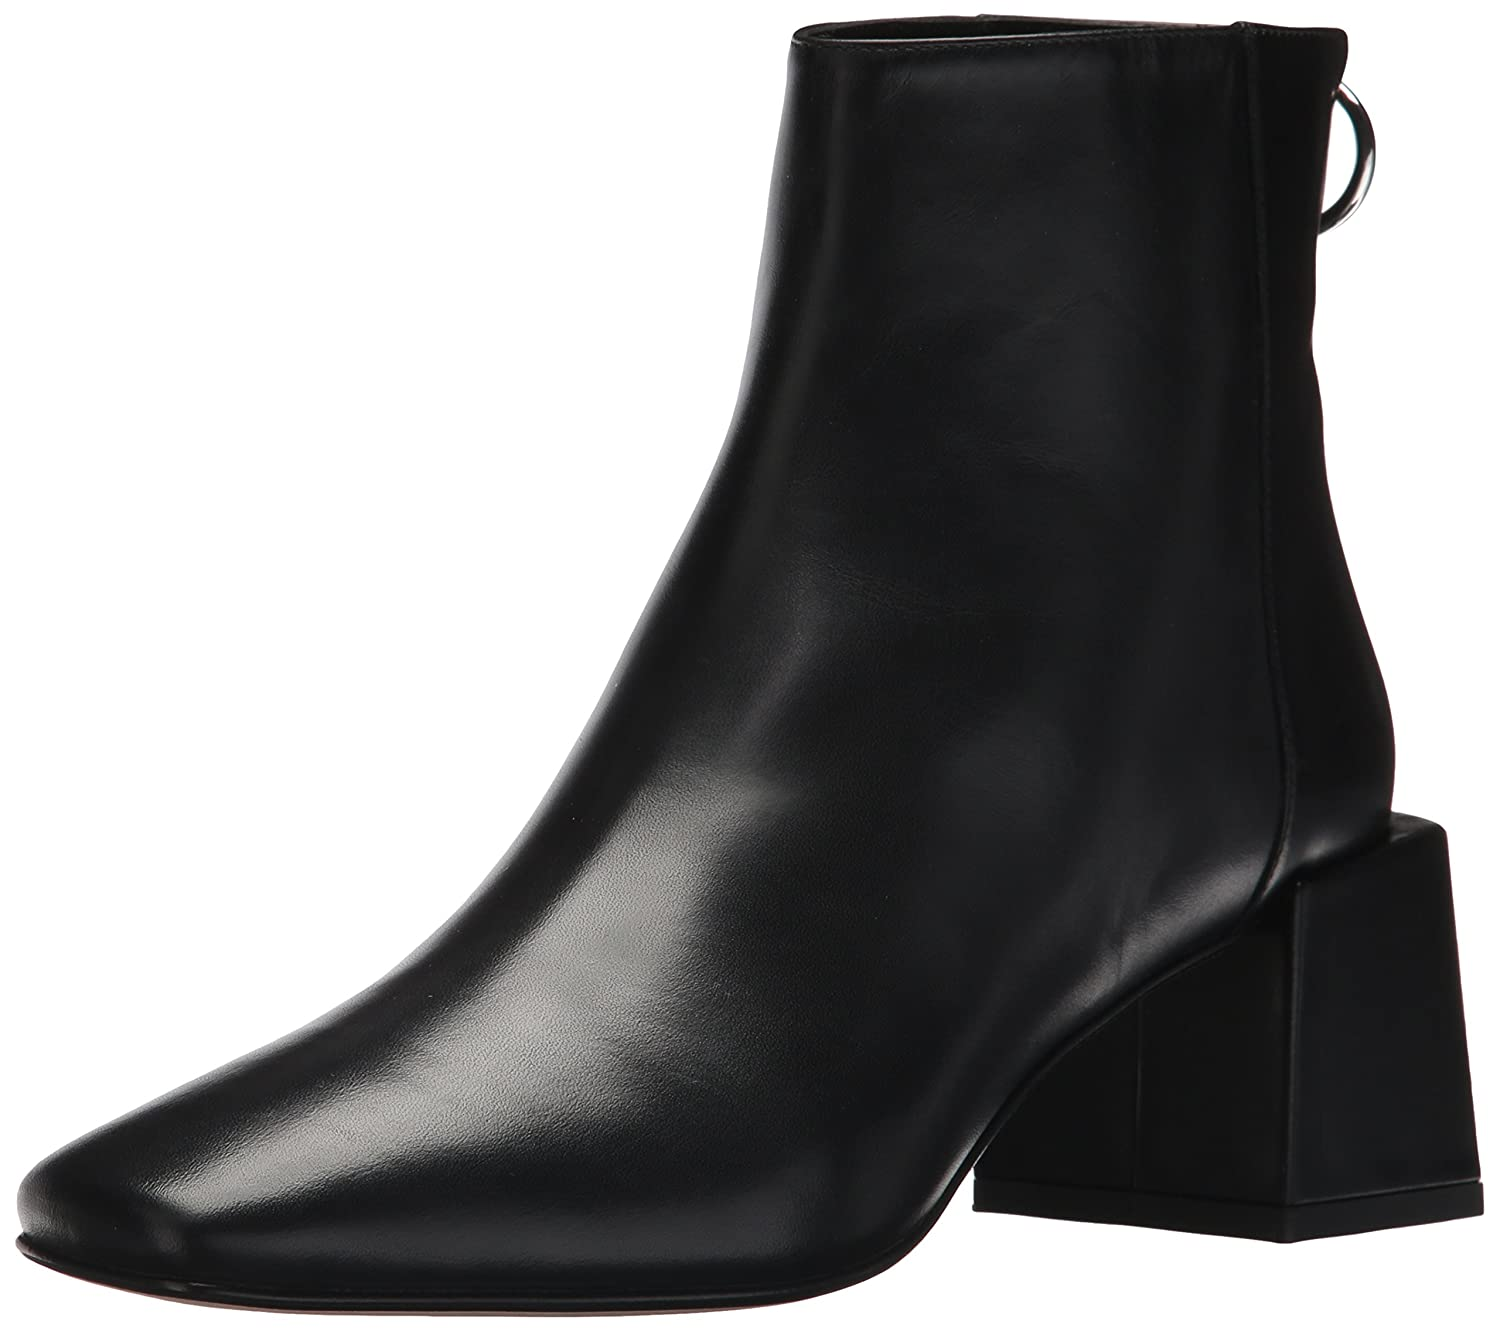 Via Spiga Women's Lara Blocked Ankle Boot B074CYQ7VS 9 B(M) US|Black Leather